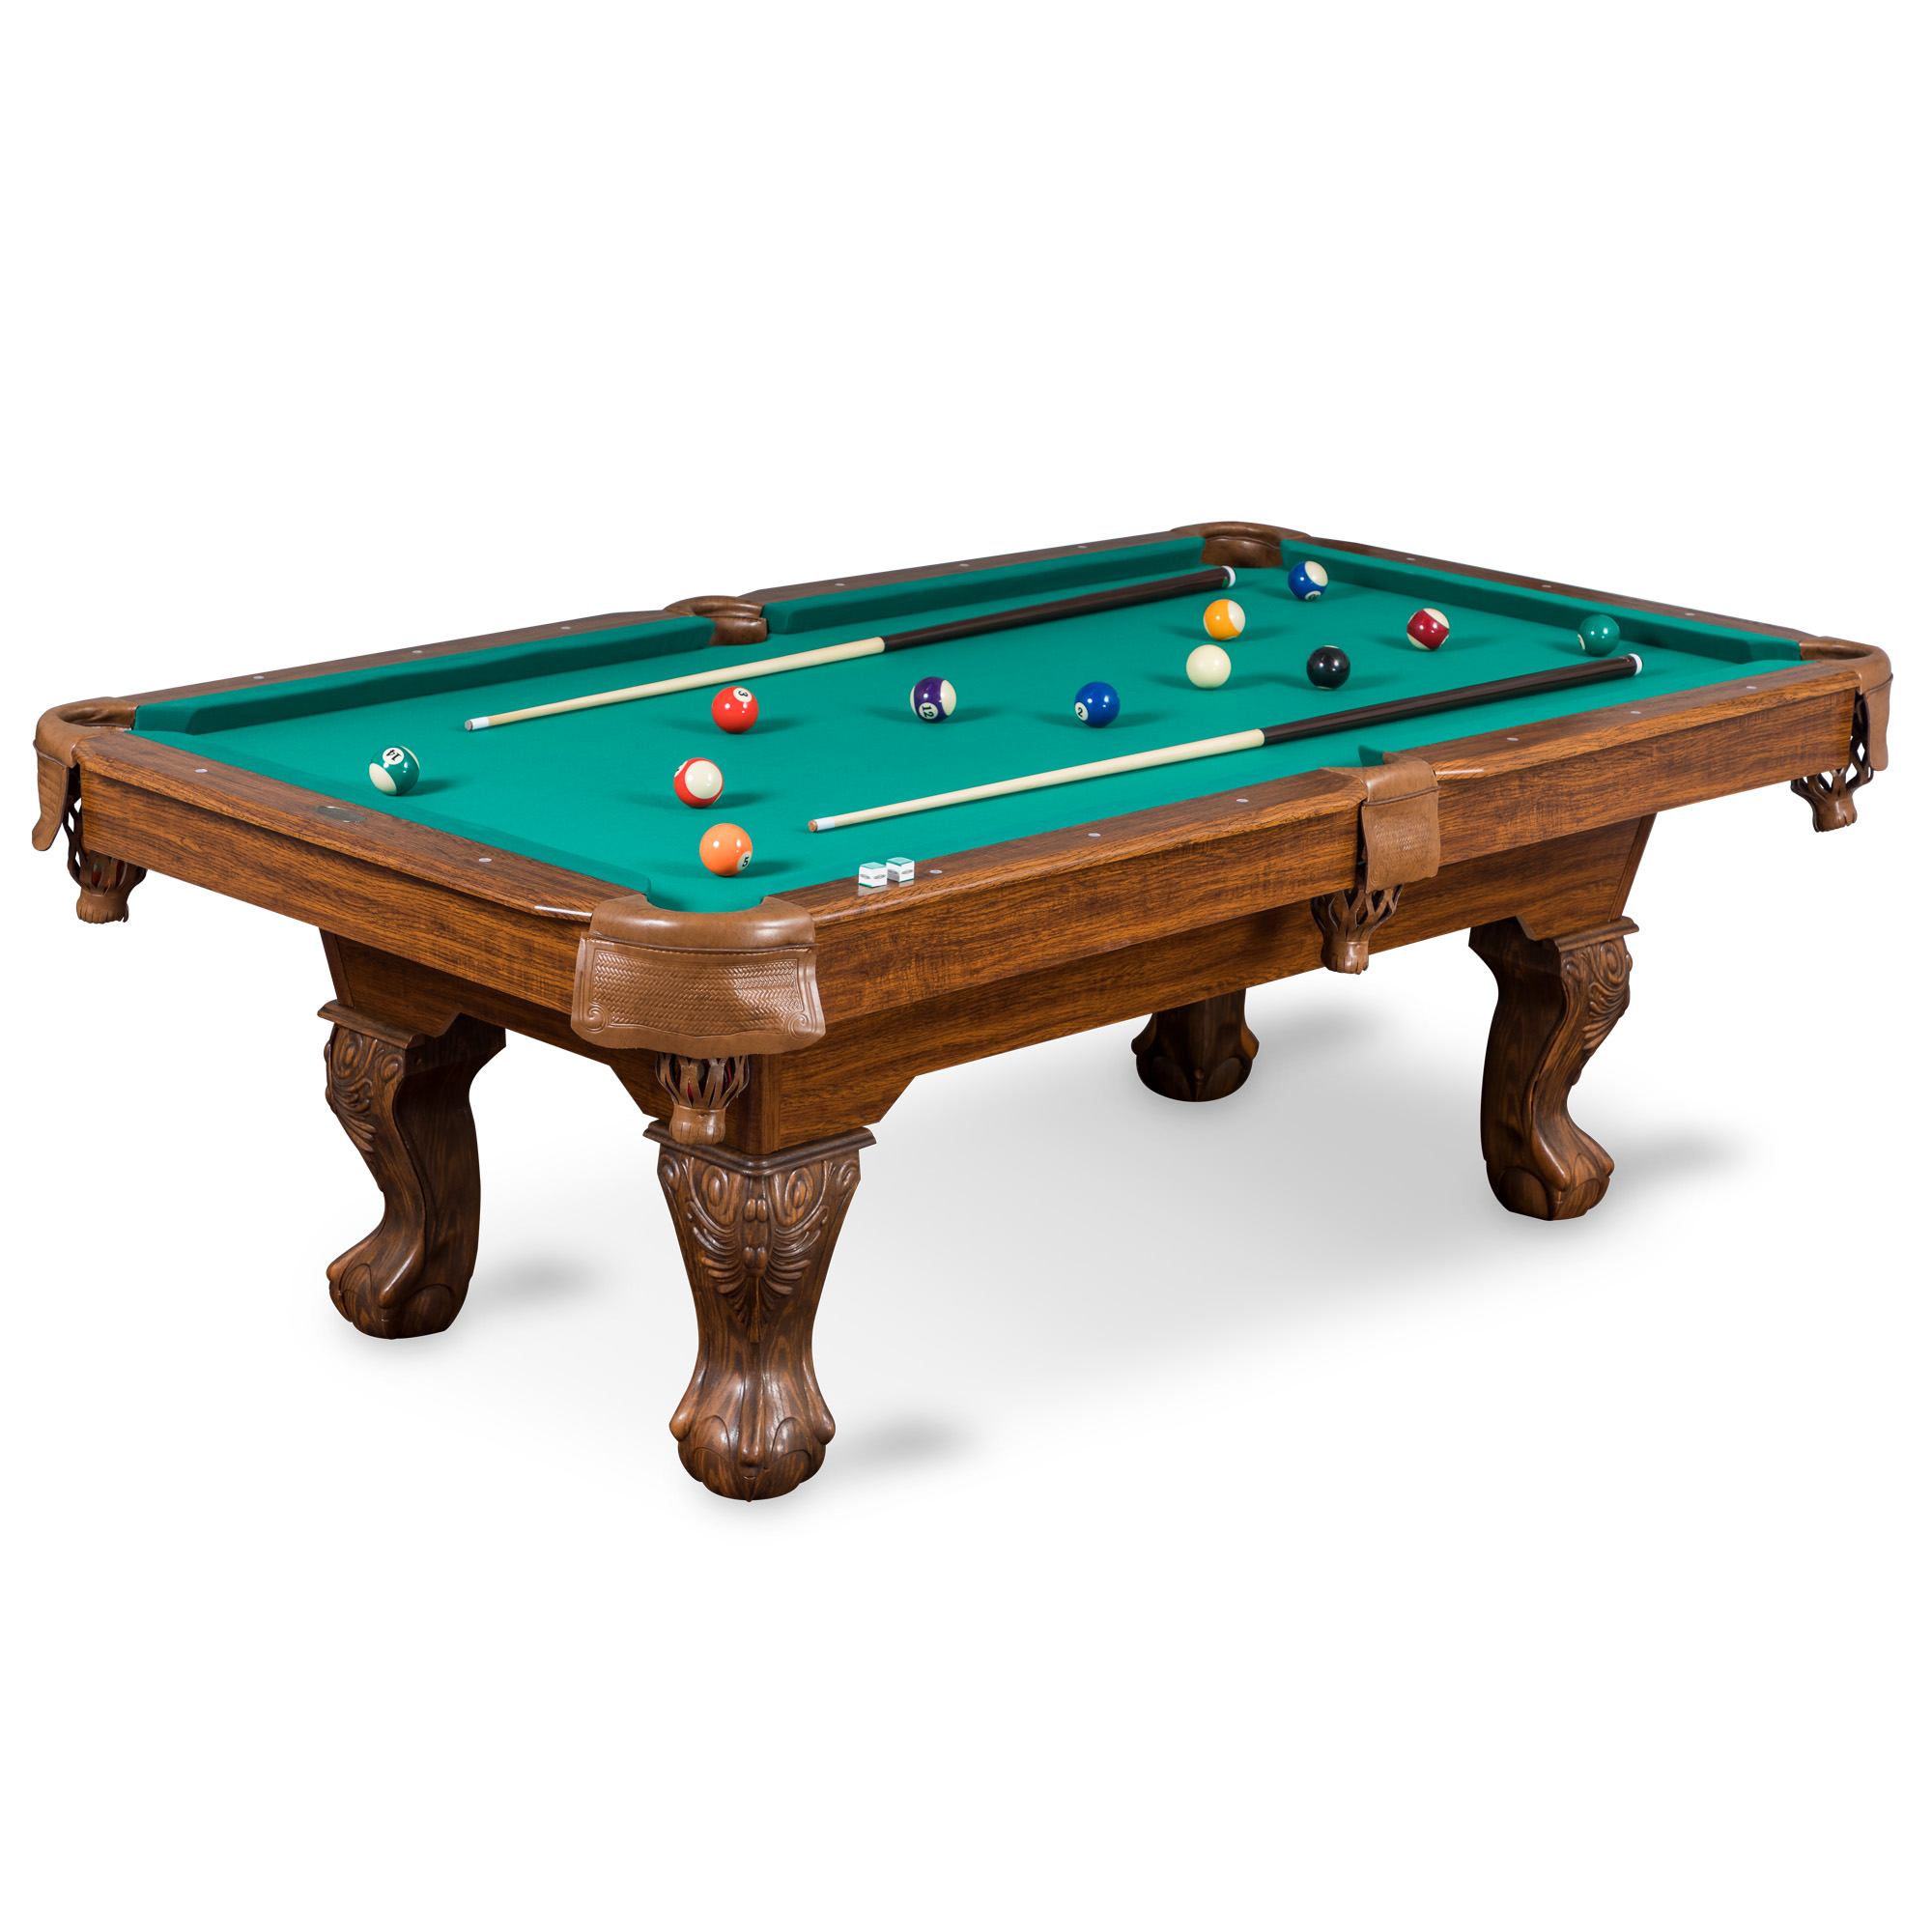 Classic Sport Brighton Pool Table, 87-inch (7ft. 3 in.) Green